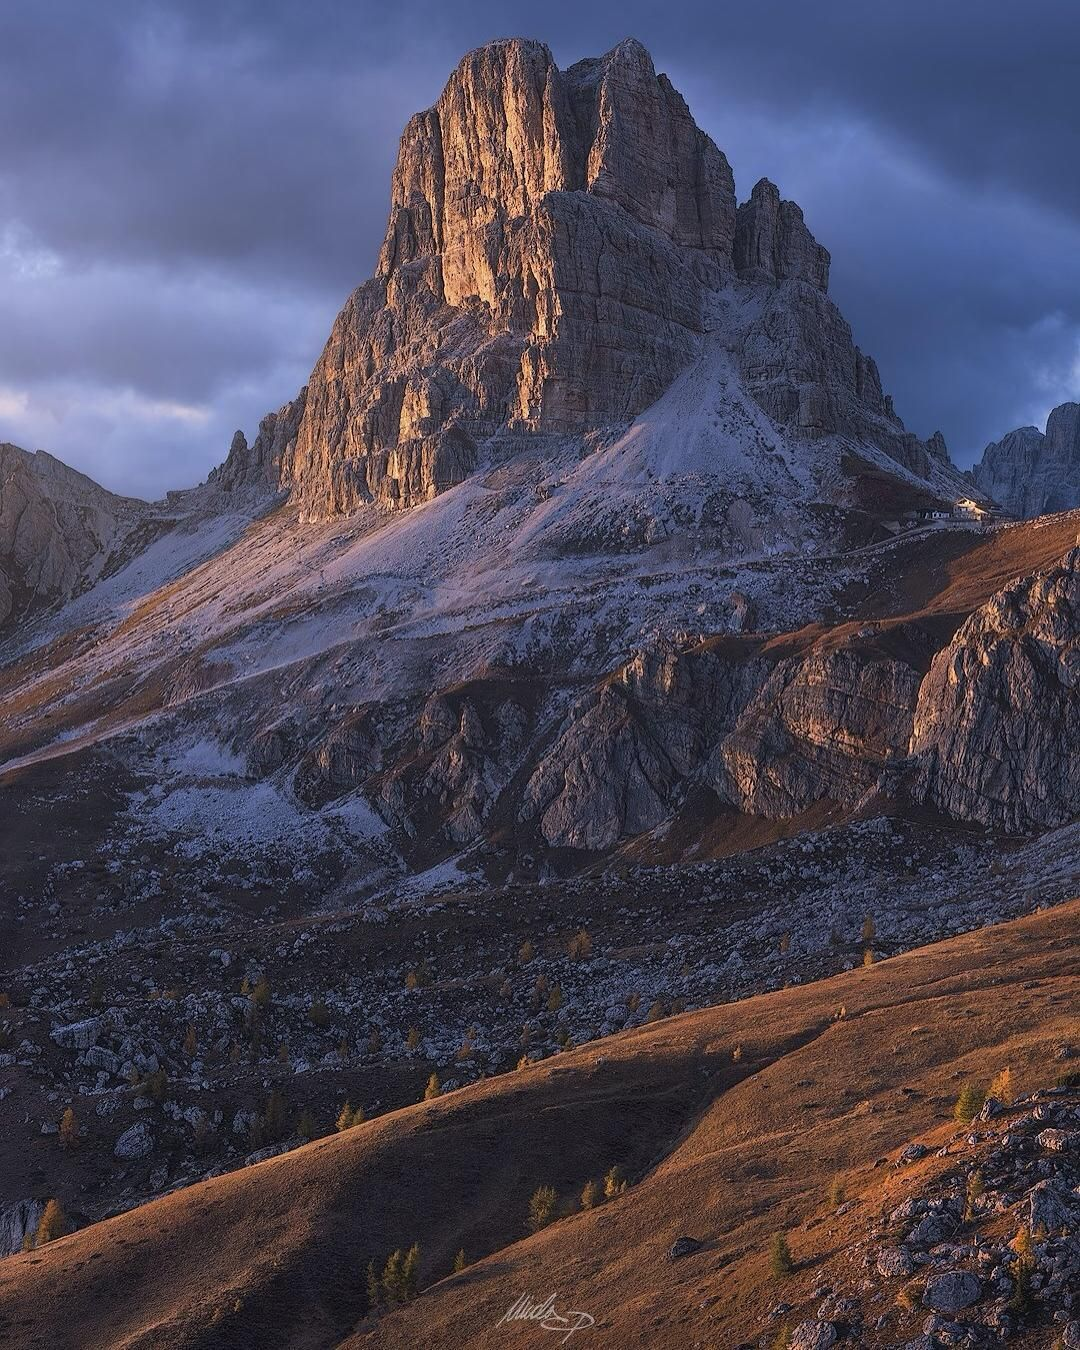 Fabulous Mountainscapes of The Dolomites by Nicola Pirondini #photography # mountainscapes #Dolomites | Dolomites, Cool landscapes, Best places to travel